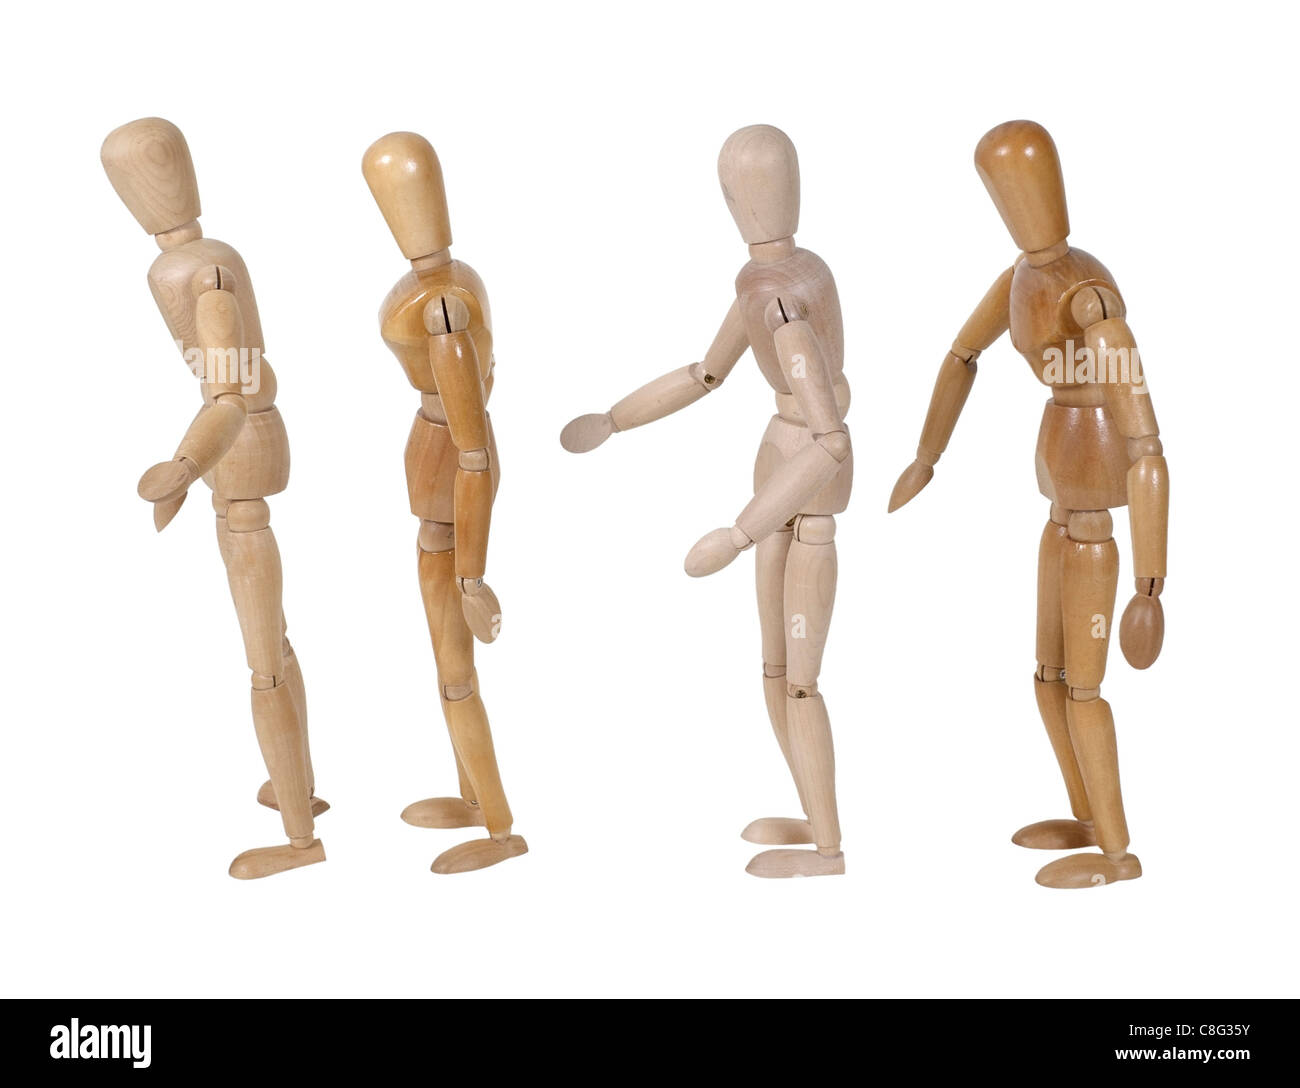 Wooden models representing people standing in line - path included - Stock Image